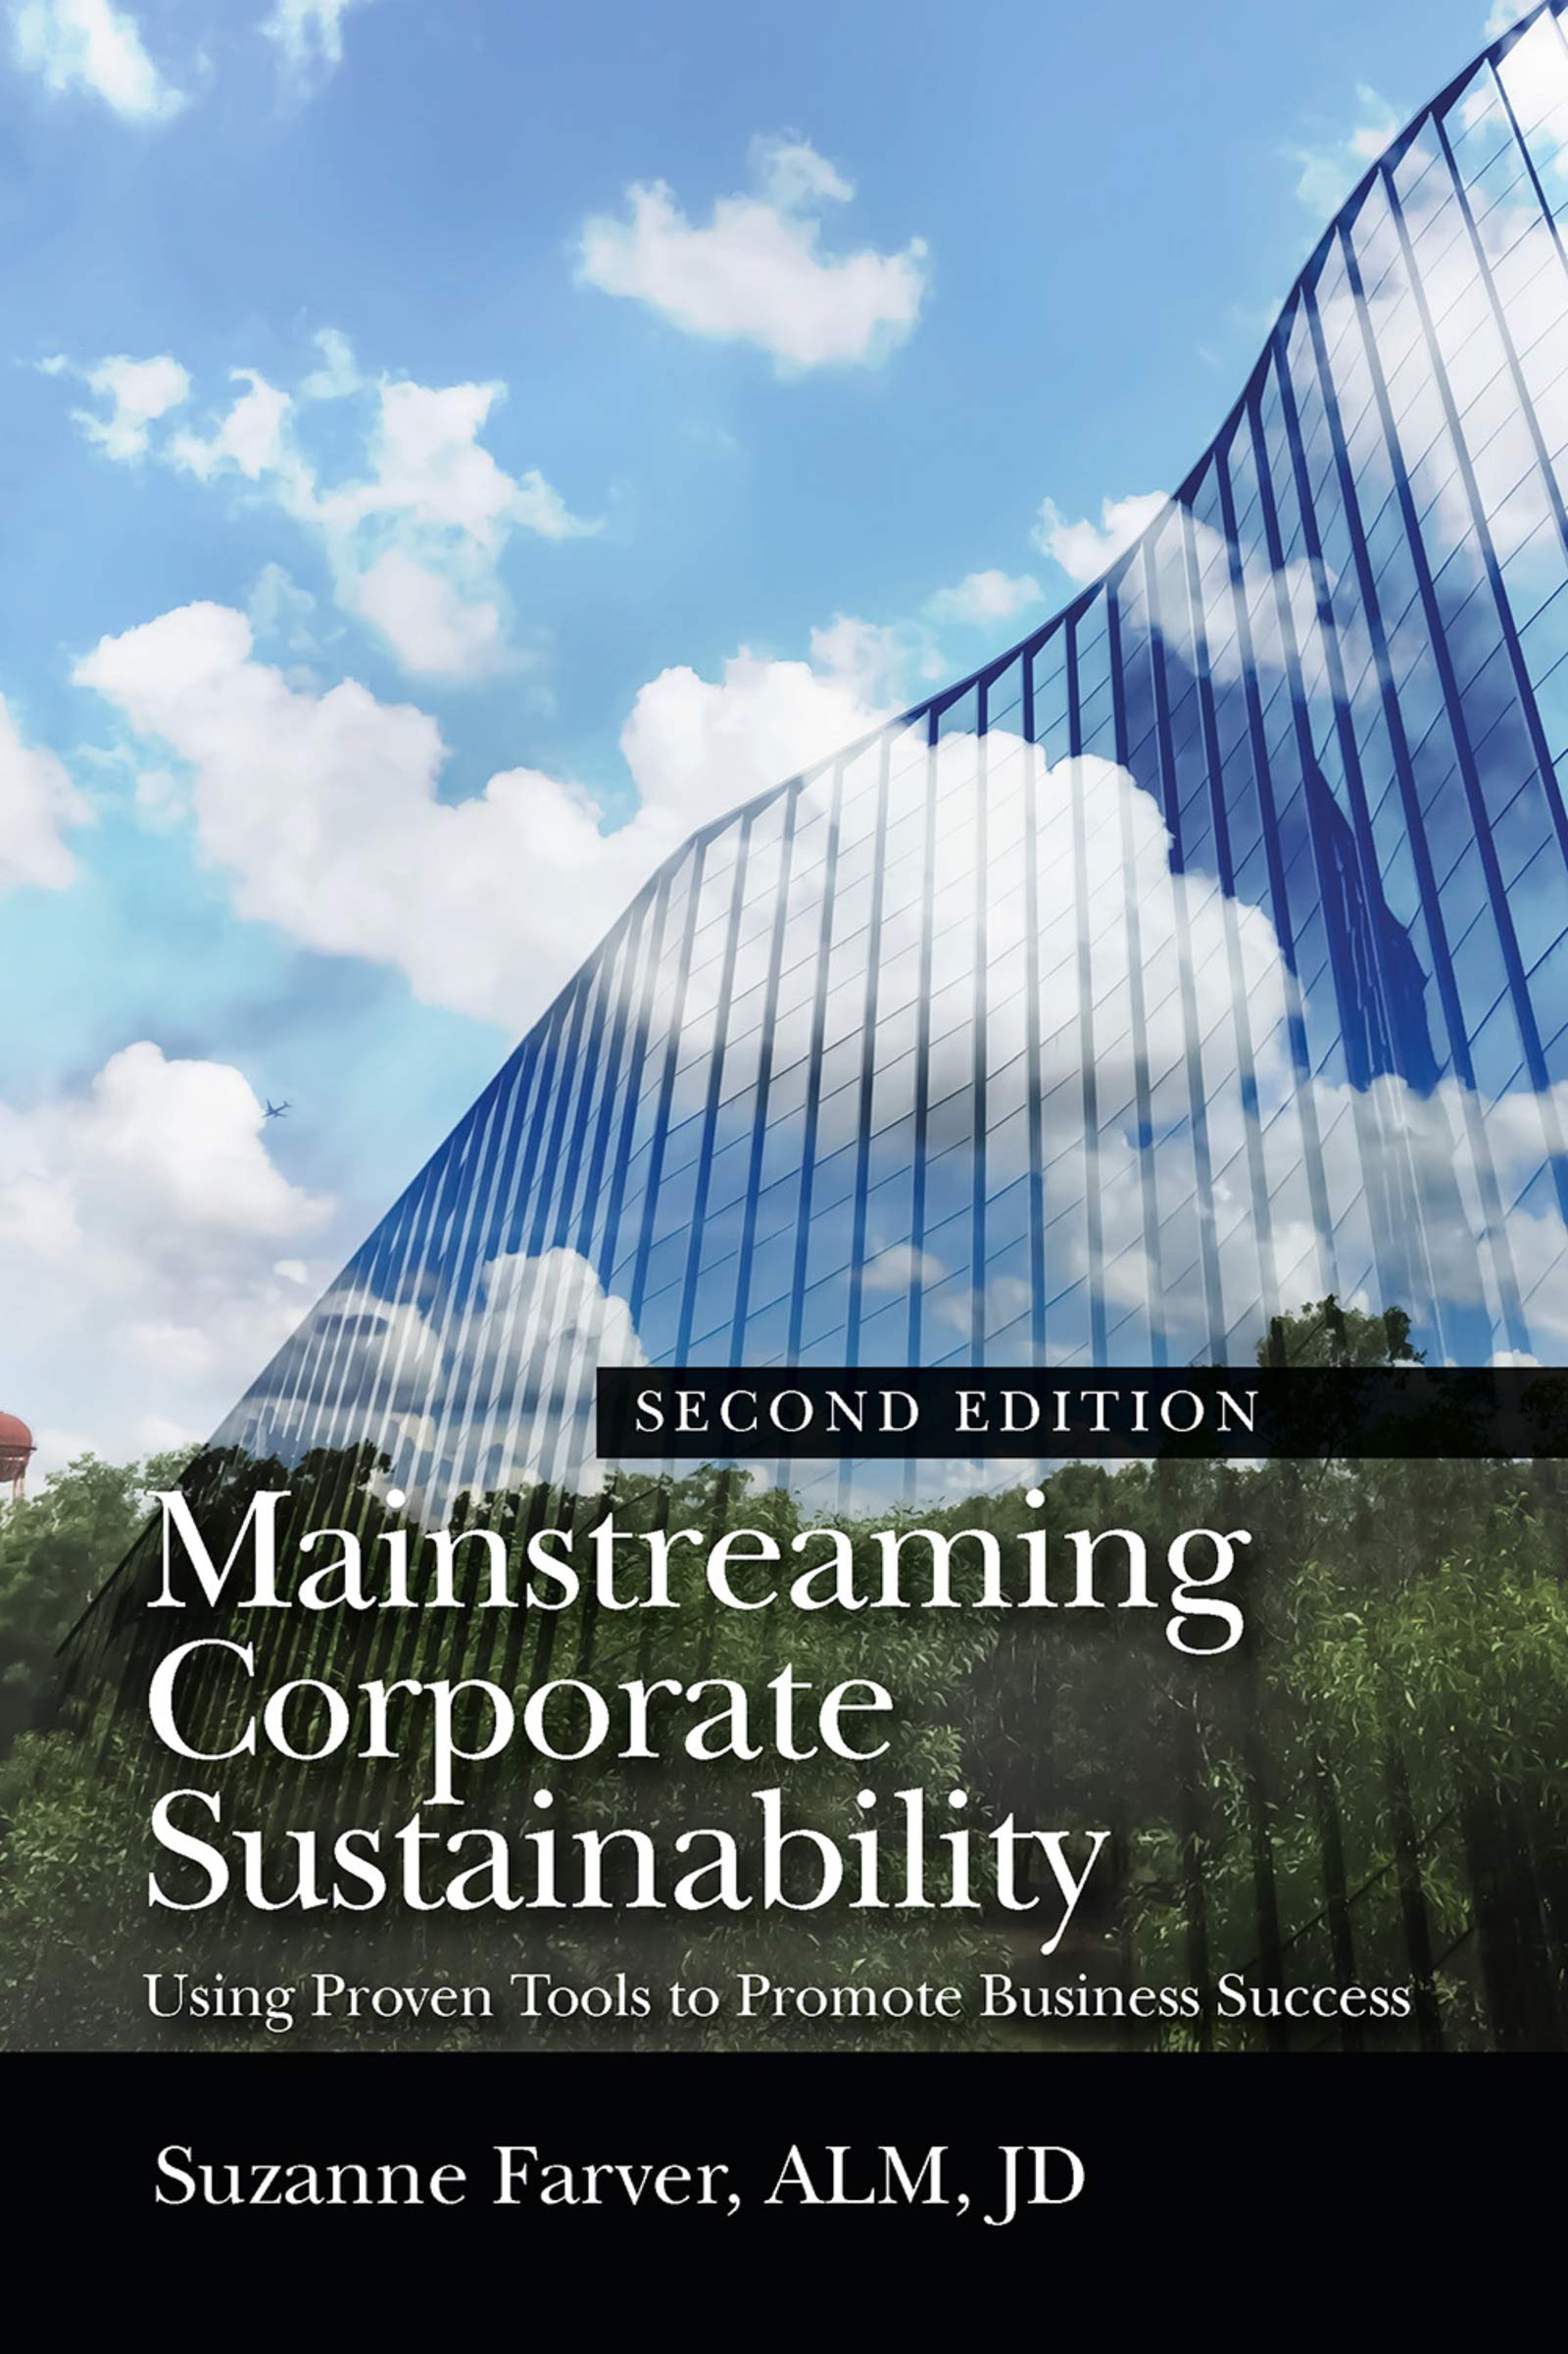 Mainstreaming Corporate Sustainability: Using Proven Tools to Promote Business Success